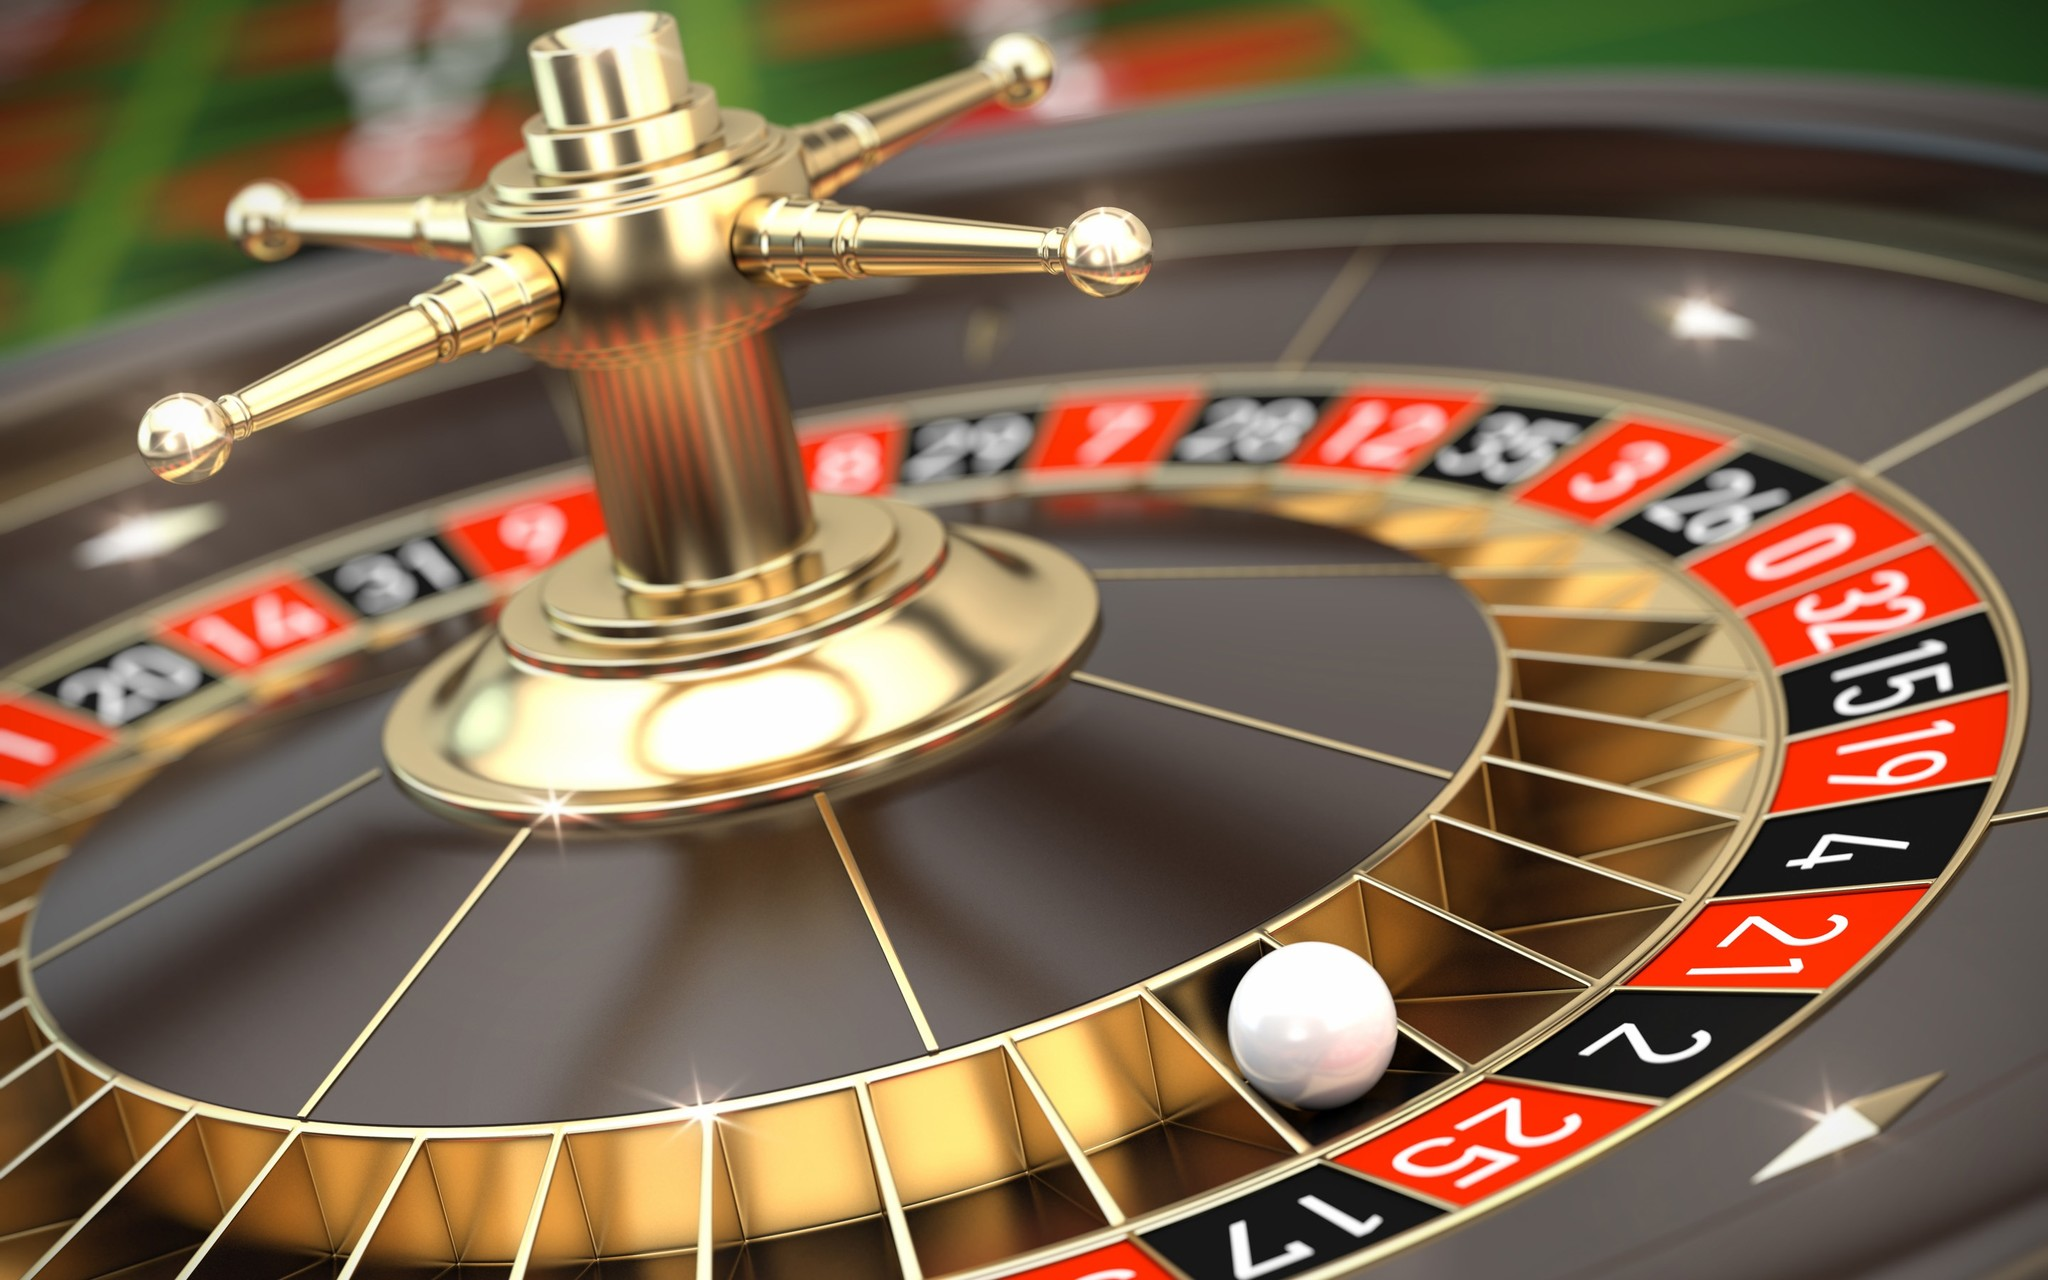 Roulette online free play game